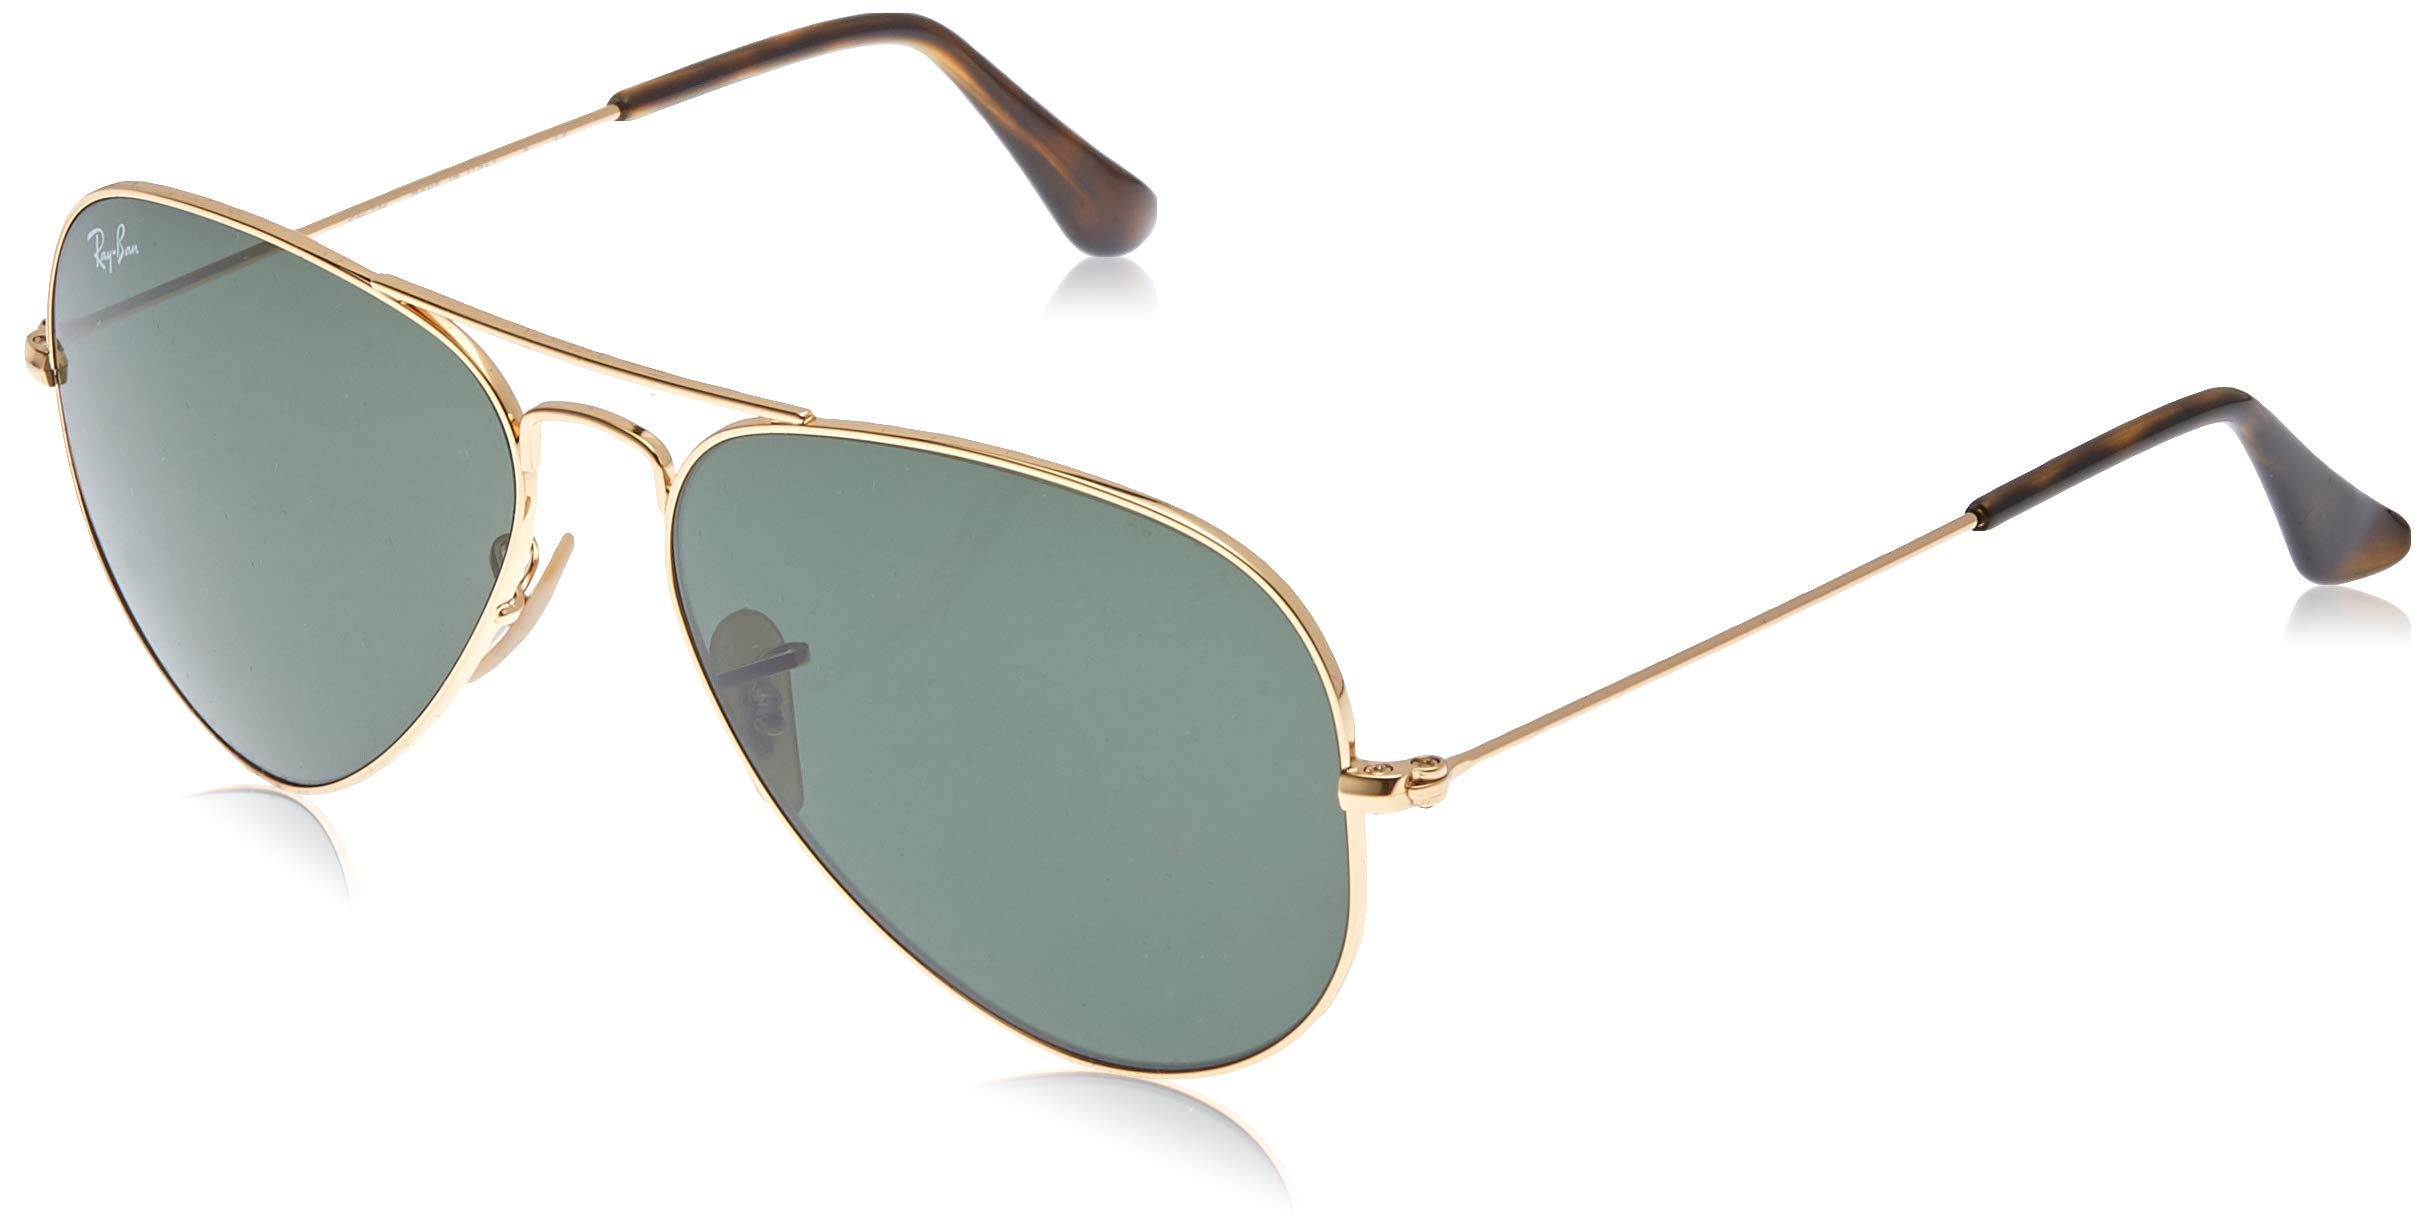 RAY-BAN RB3025 Aviator Large Metal Sunglasses, Gold/Crystal Green, 58 mm by RAY-BAN